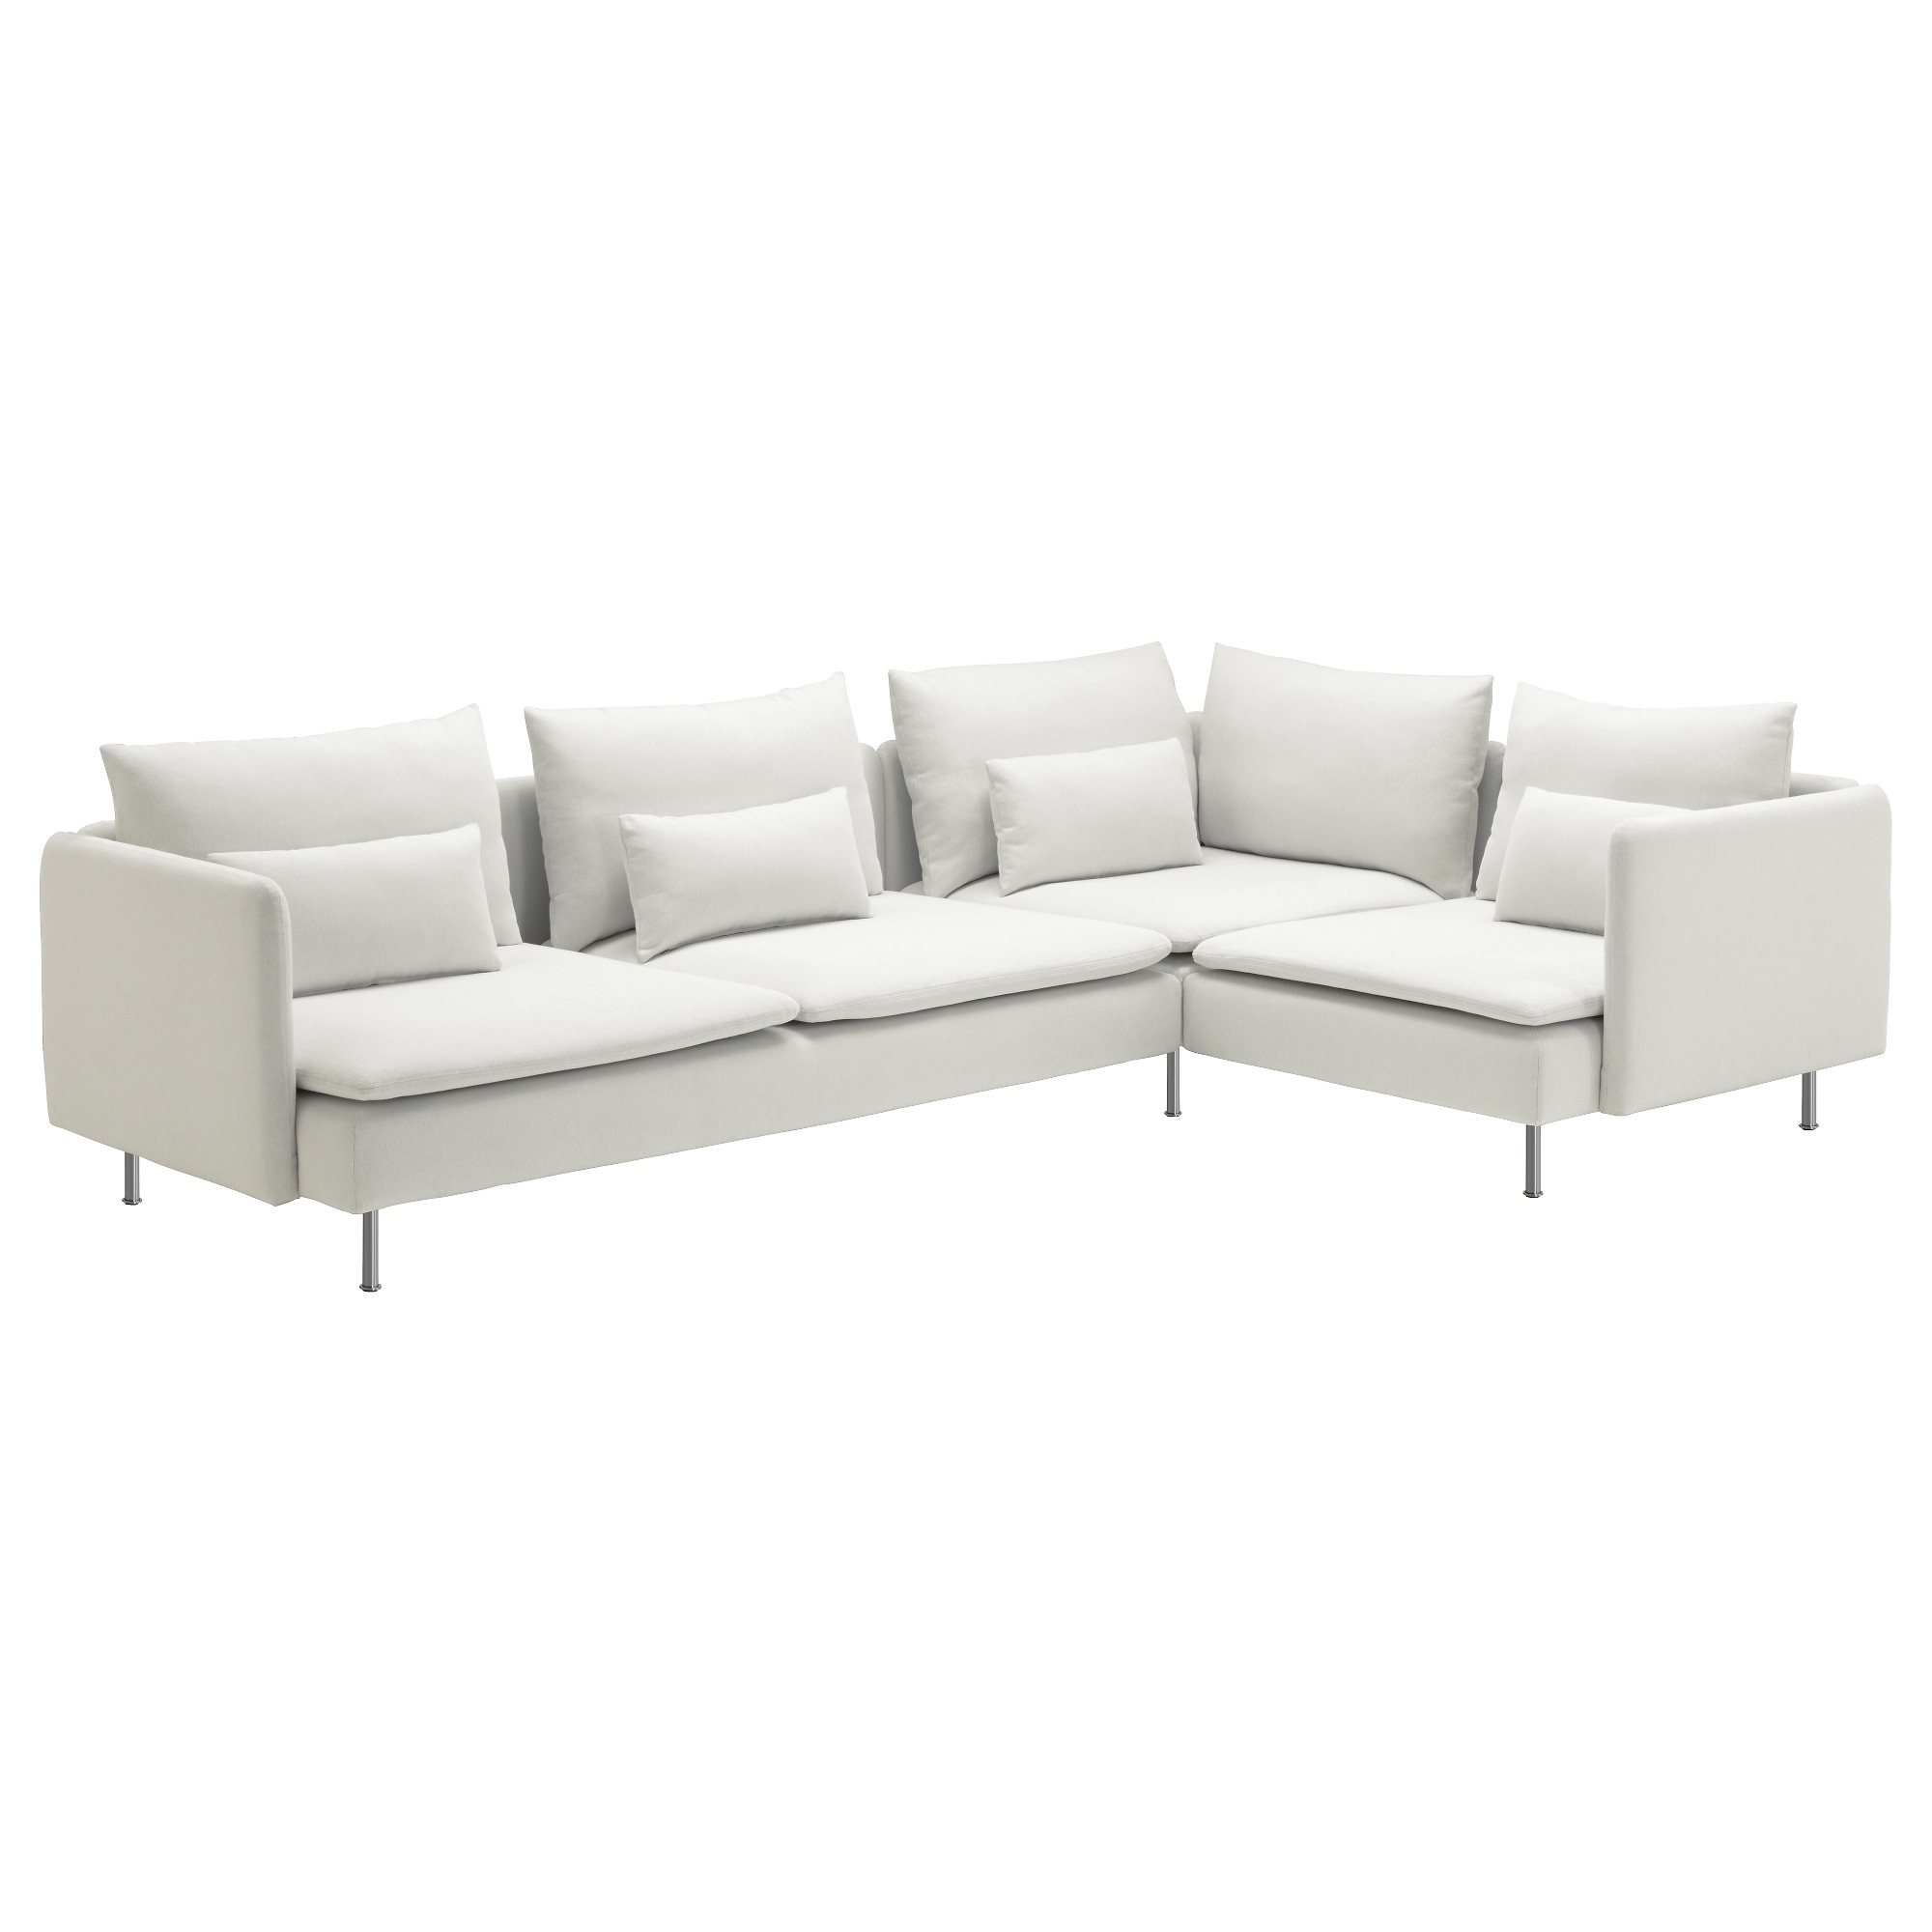 Most Recent Söderhamn Sectional, 4 Seat Corner – Samsta Light Pink – Ikea For 4 Seat Sofas (View 9 of 15)